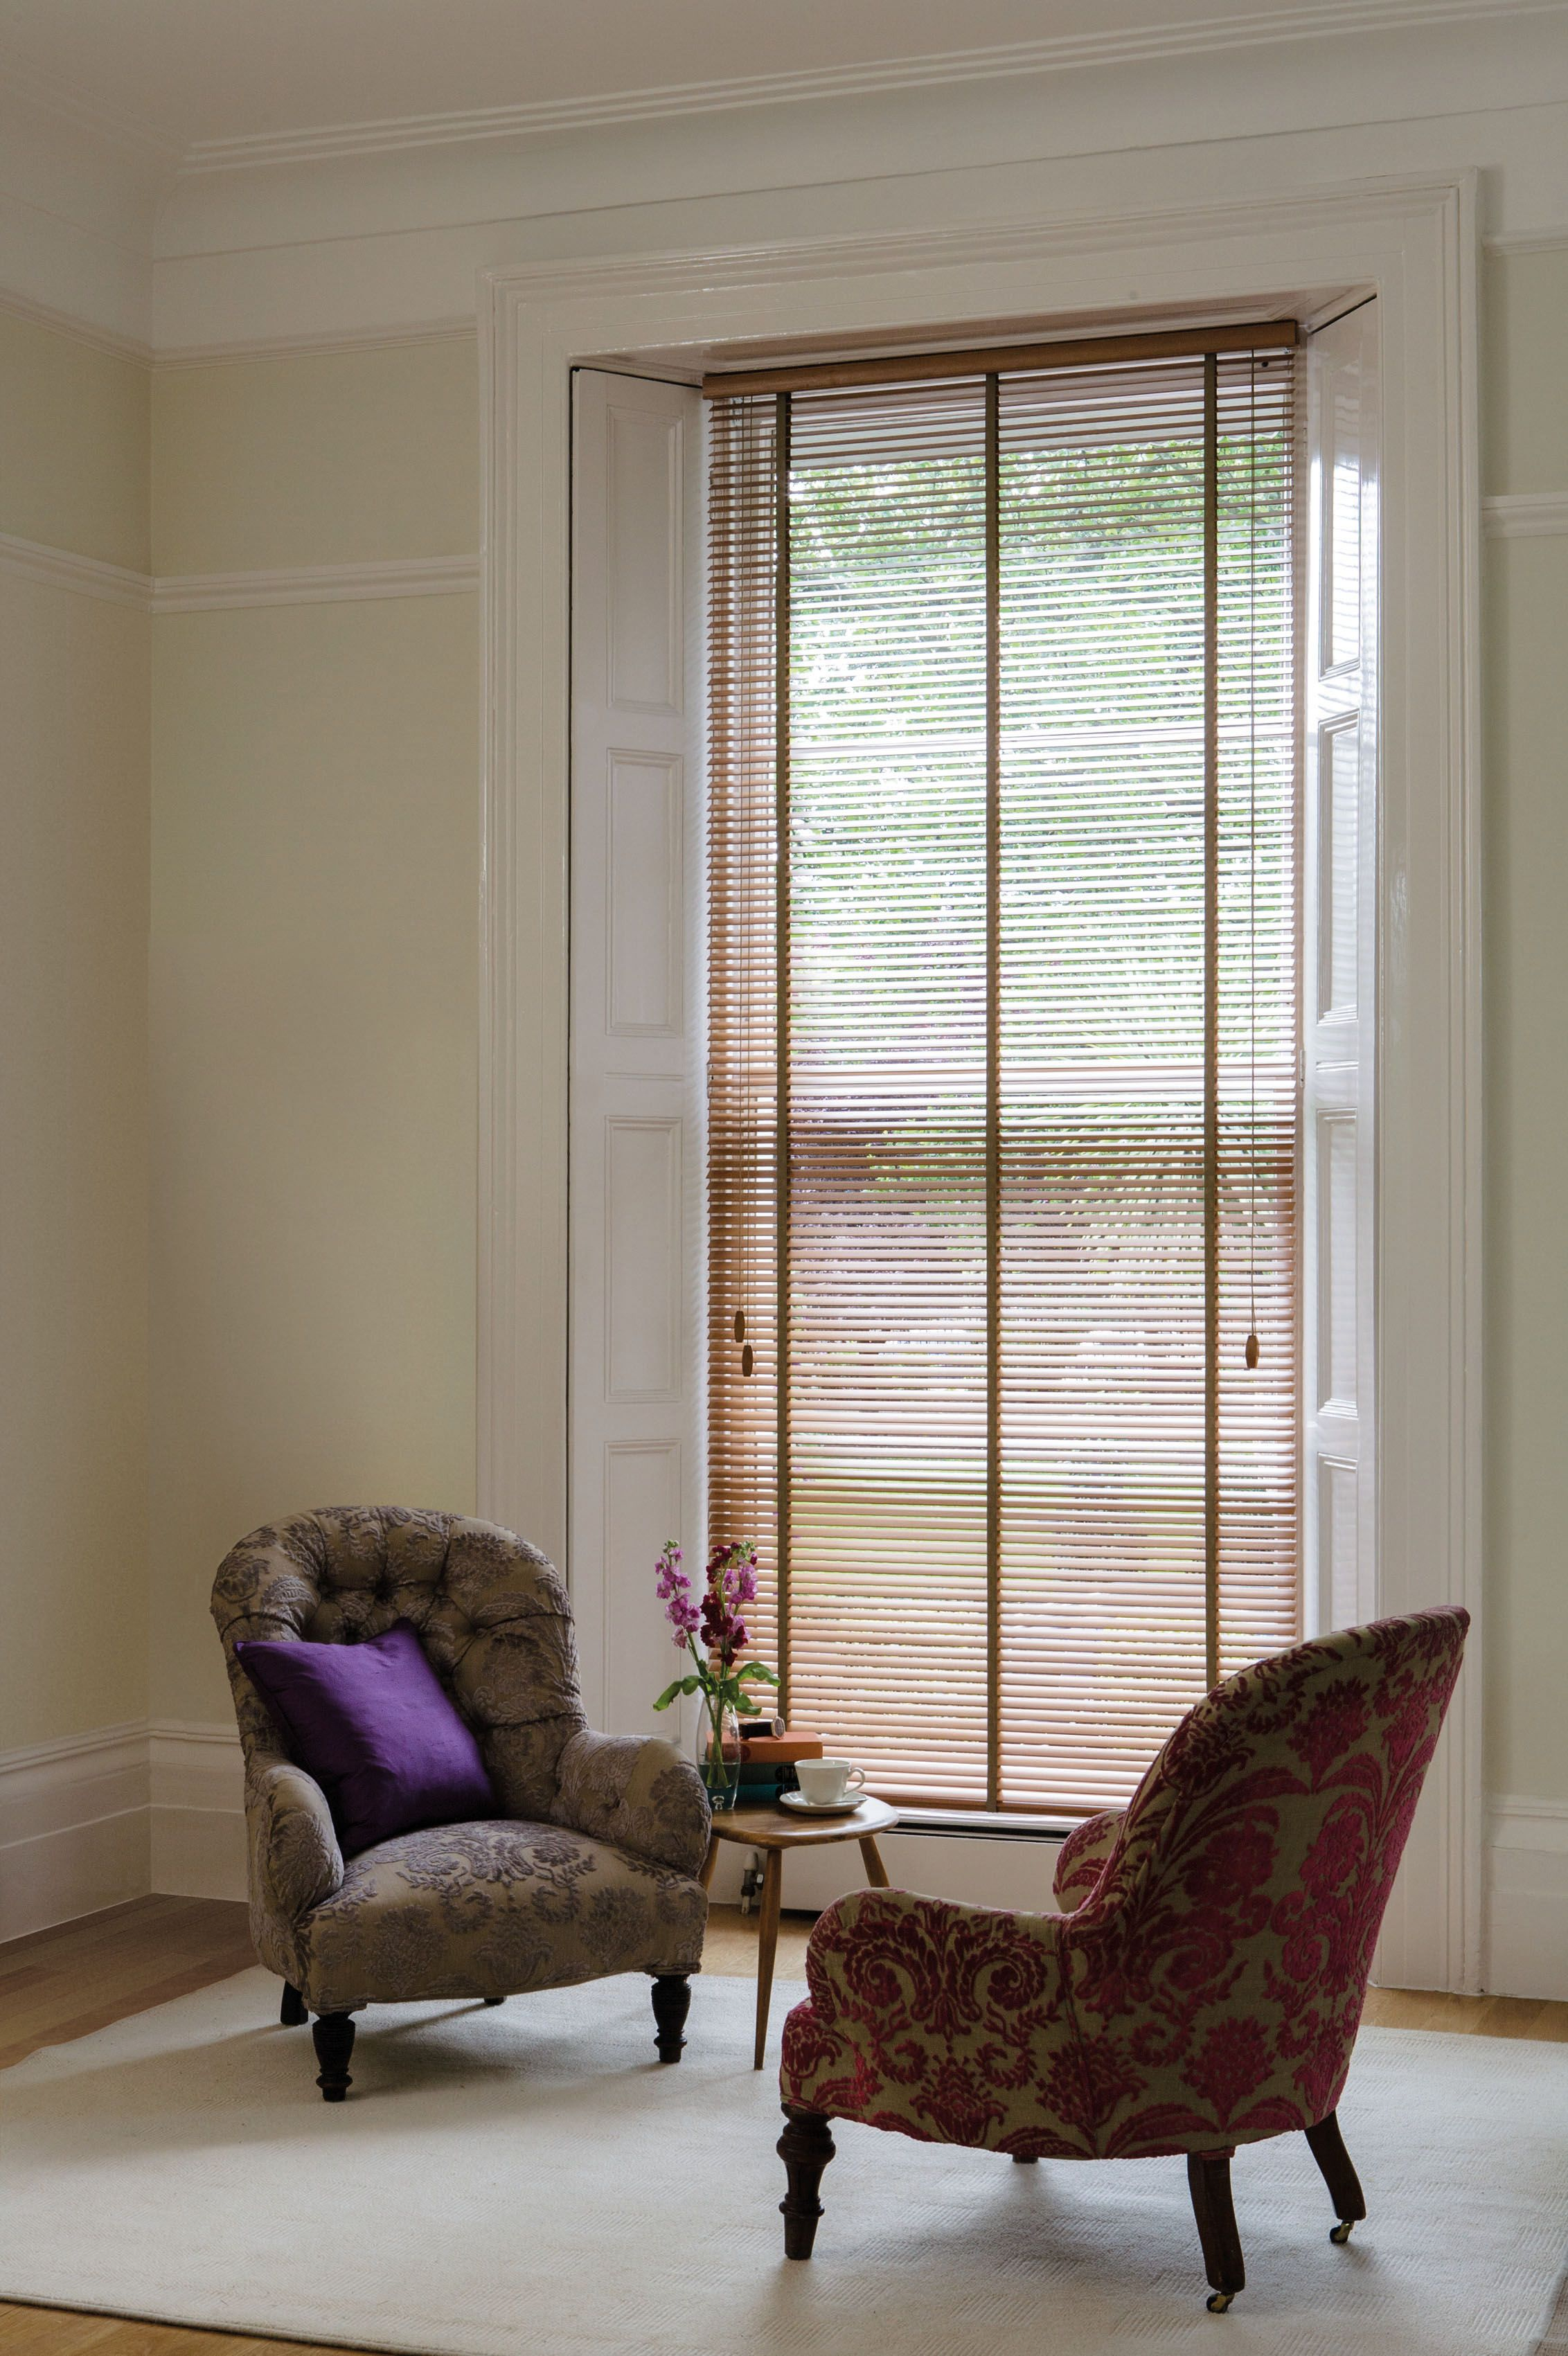 Our Rustic Wooden Blinds Are Made To Measure So That It Can Fit Any Type Of Window Woodenblinds Rusticblinds Hom Wooden Blinds Blinds Wood Blinds